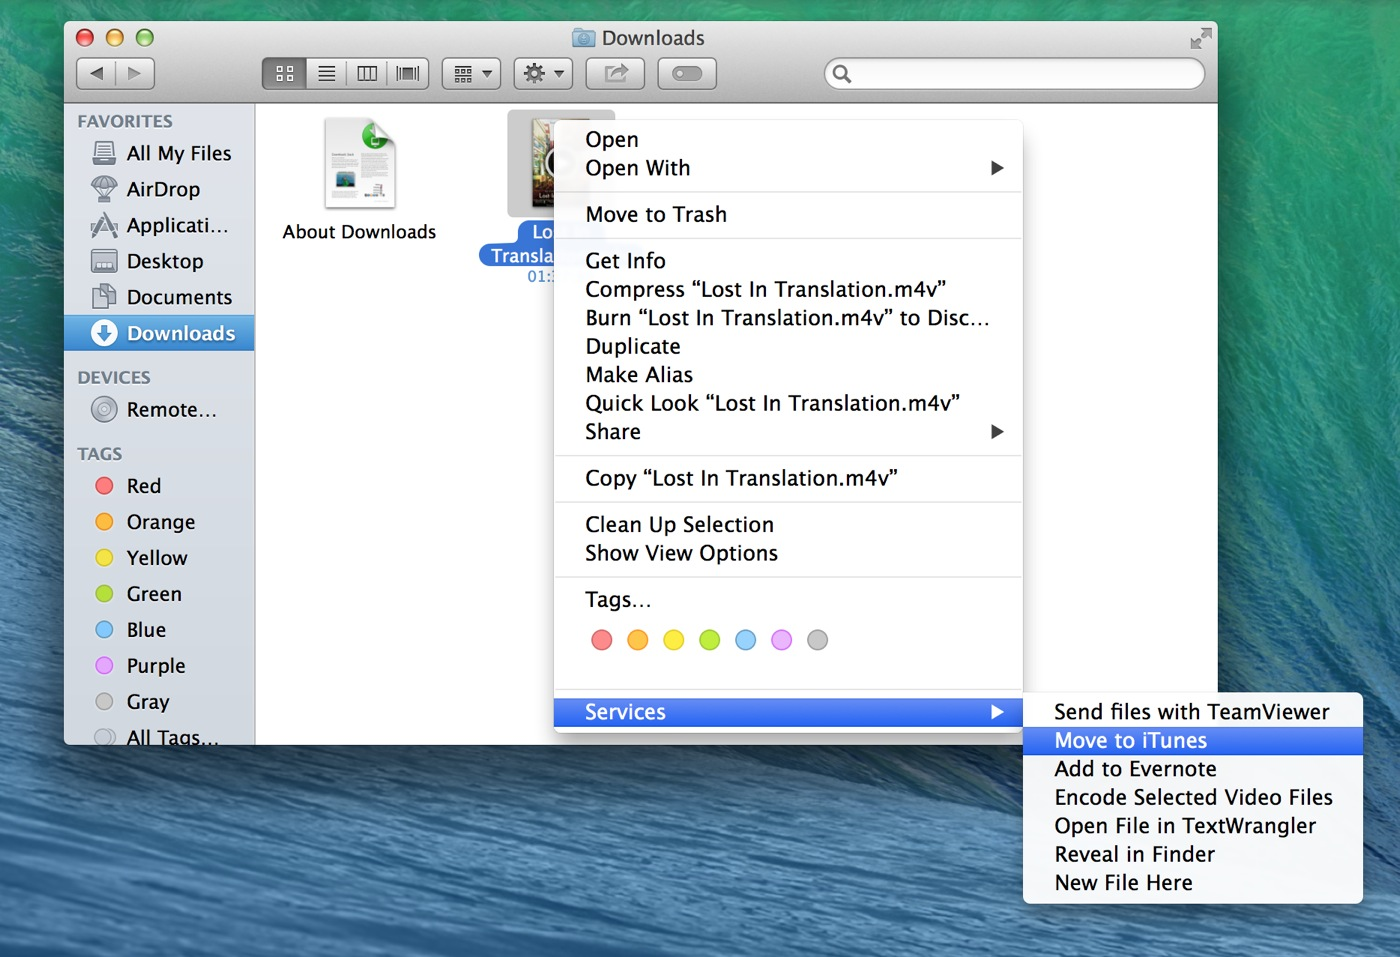 A More Efficient Way of Importing Content Into iTunes - The